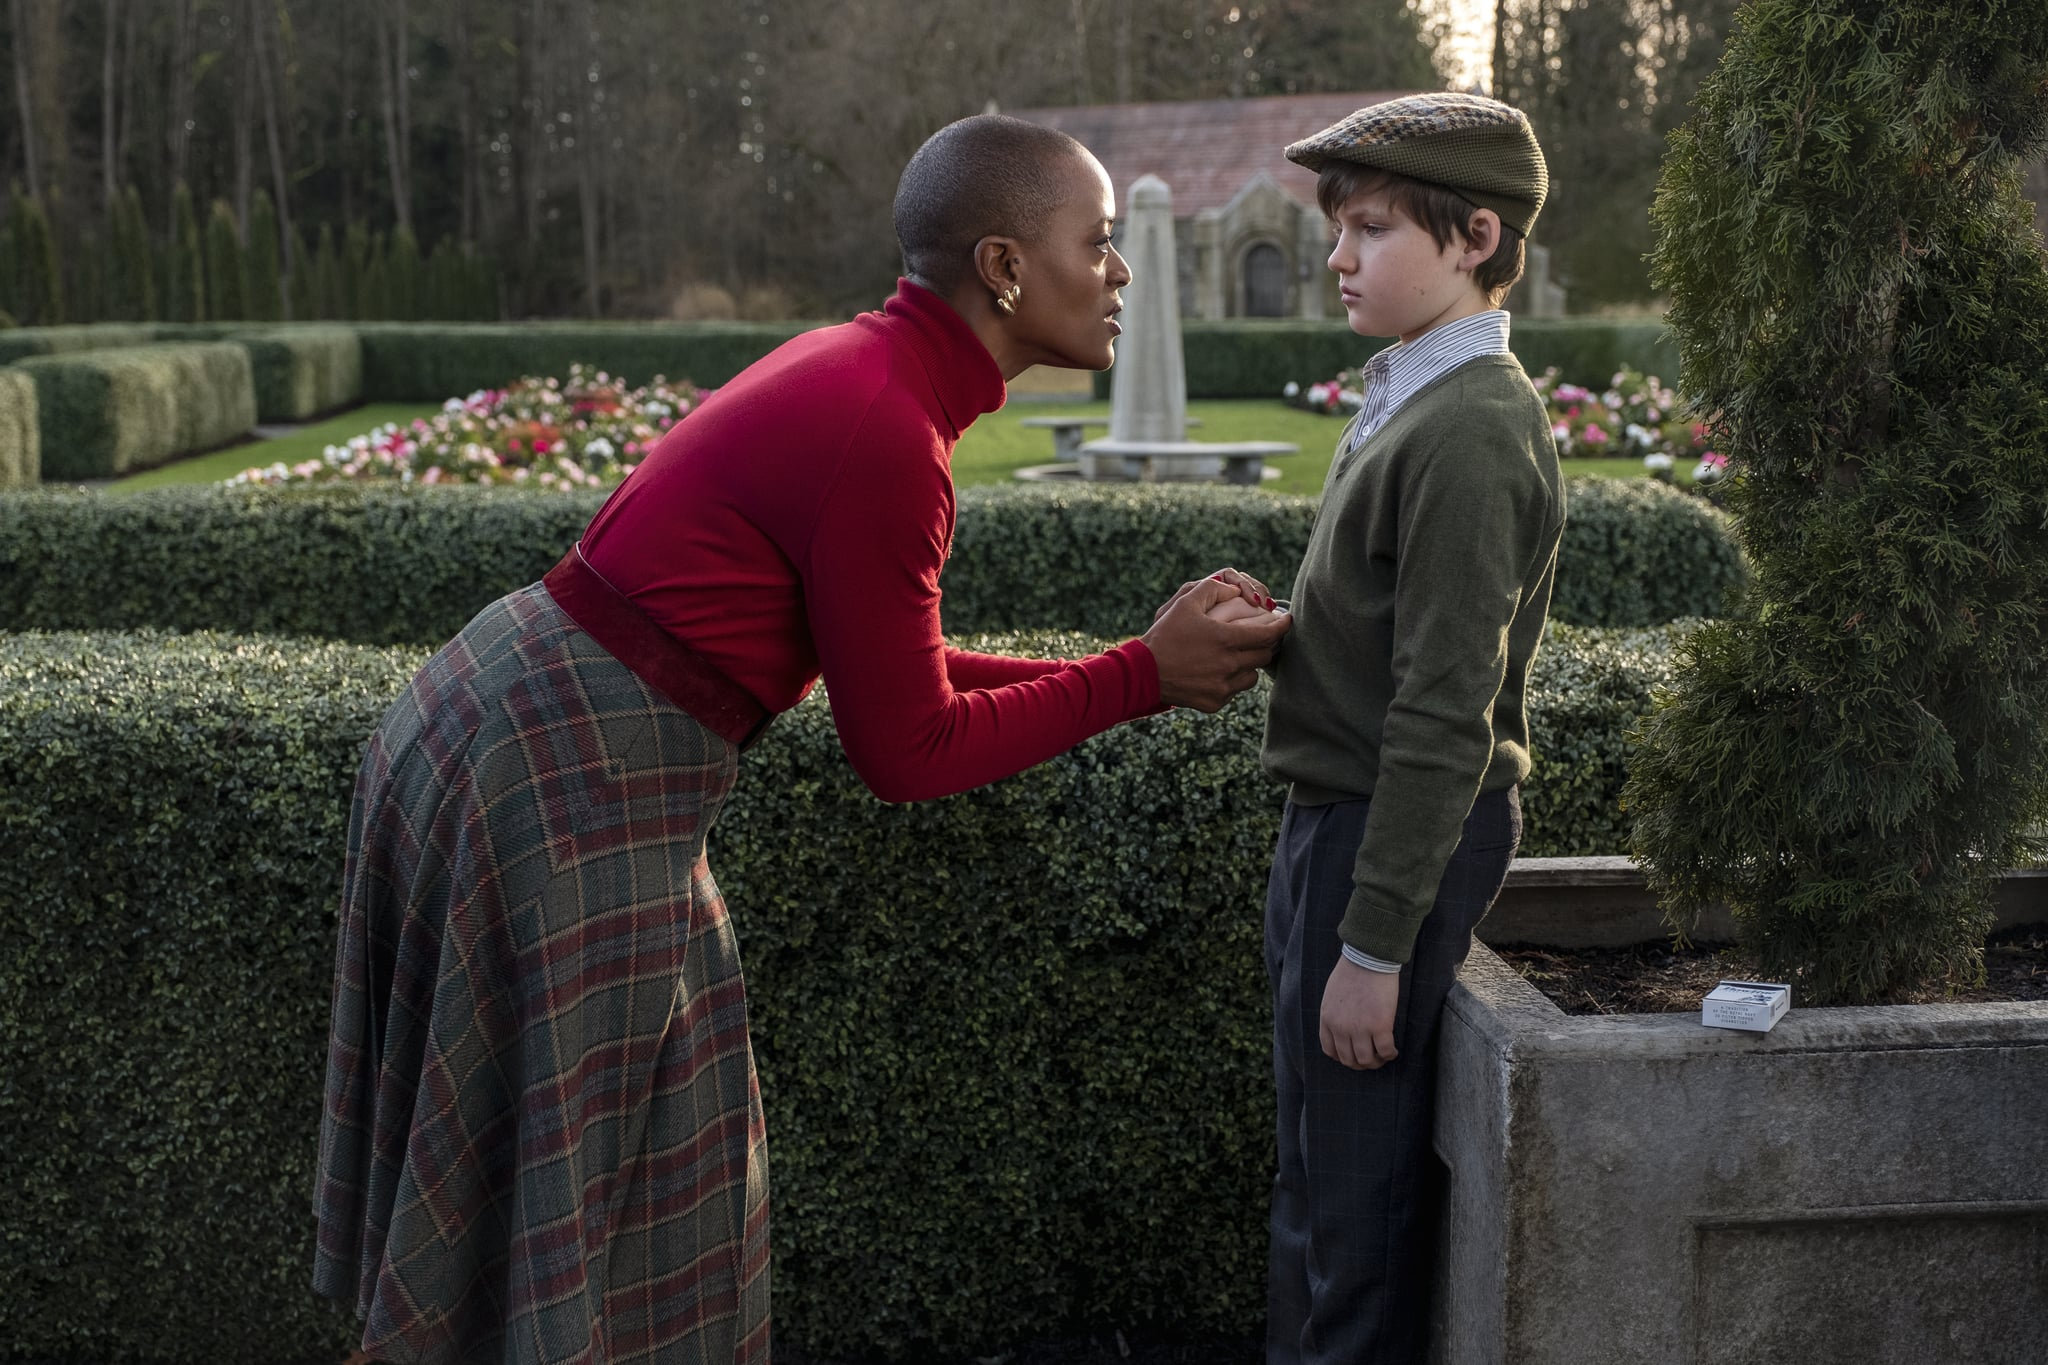 THE HAUNTING OF BLY MANOR (L to R) T'NIA MILLER as HANNAH and BENJAMIN EVAN AINSWORTH as MILES in THE HAUNTING OF BLY MANOR Cr. EIKE SCHROTER/NETFLIX  2020